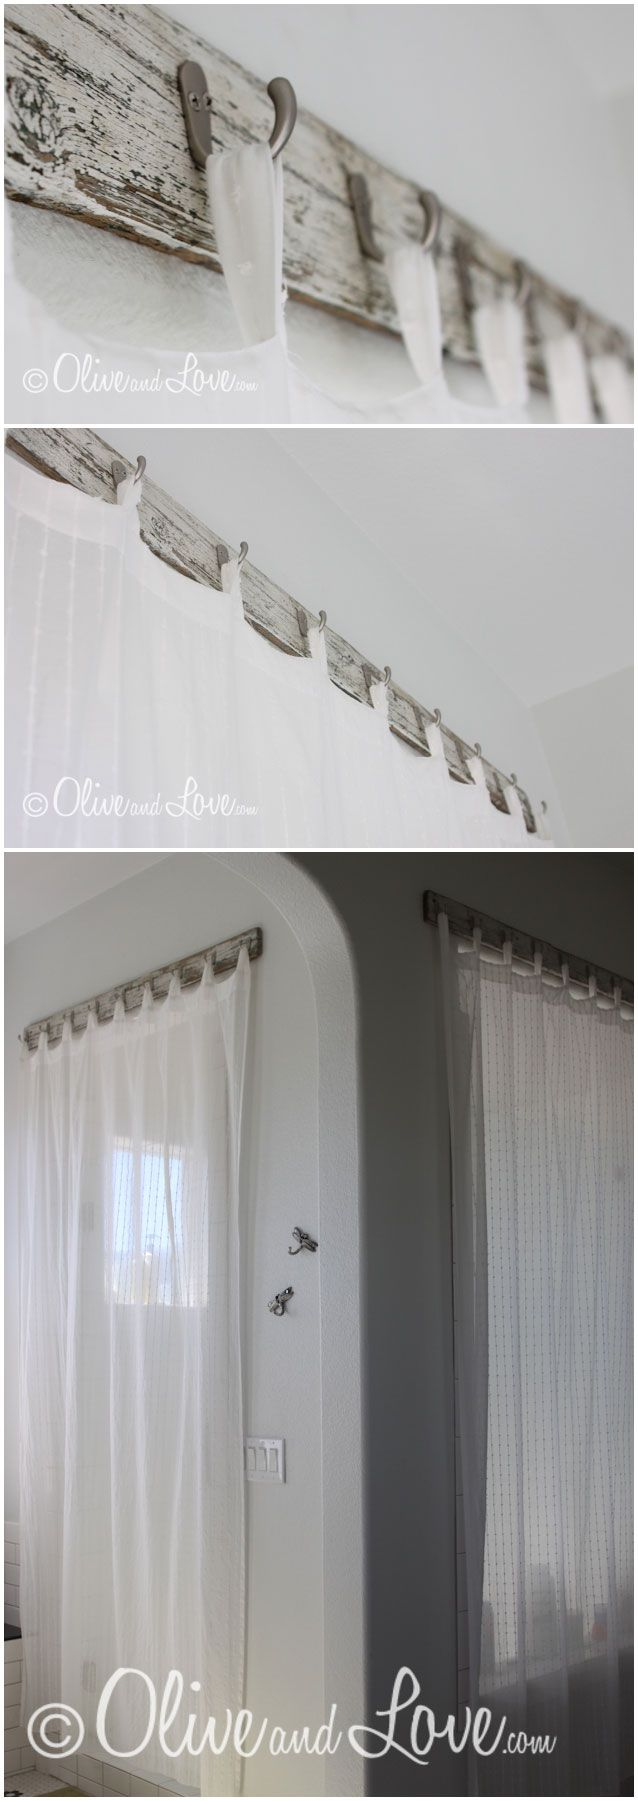 CURTAINS Hang Curtains The New Way Scrap Wood From An Old Bench Cheap Hooks Home Depot Sheer IkEA